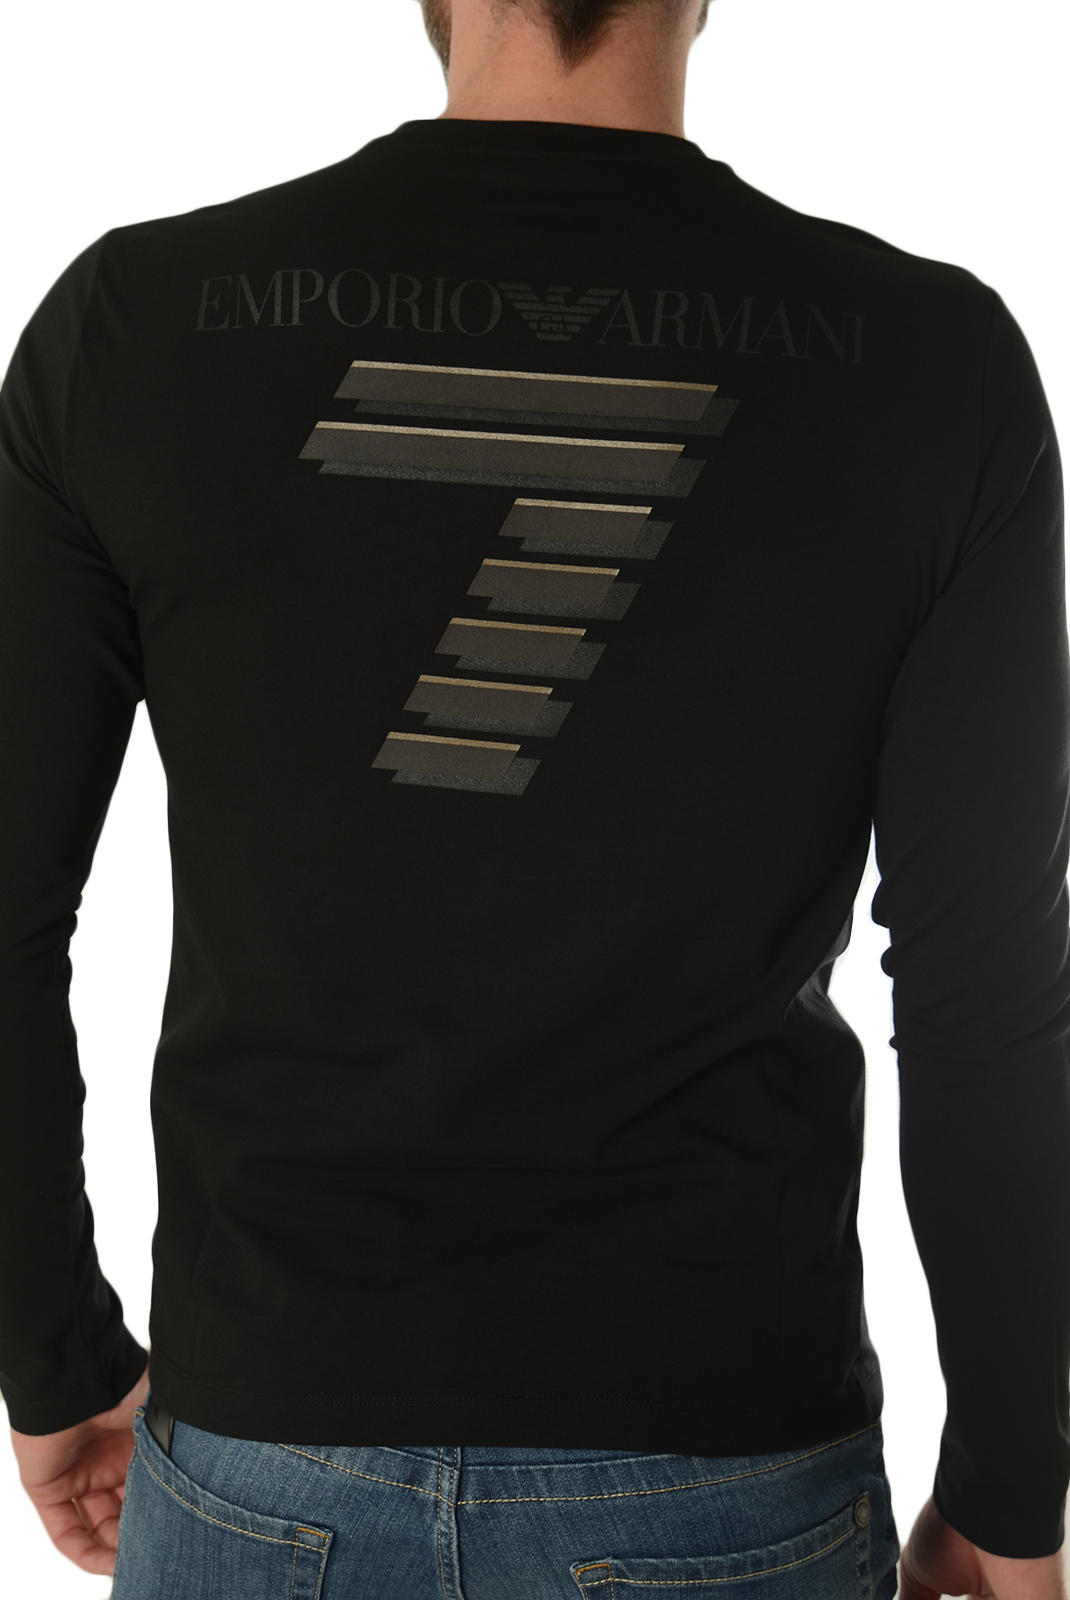 Tee-shirts manches longues  Emporio armani 6XPT83 PJ18Z 1200